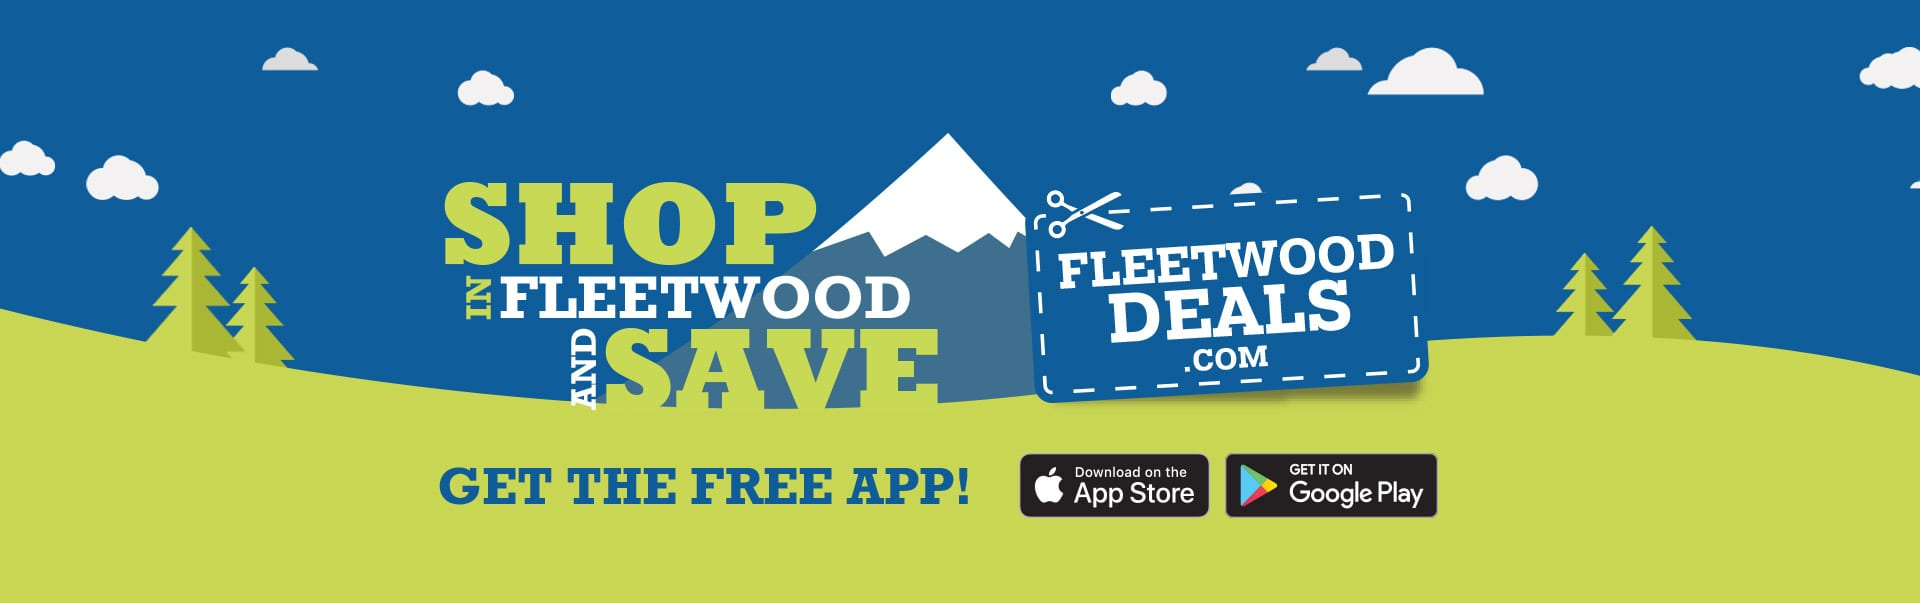 fleetwood-deals-banner-2-home-page